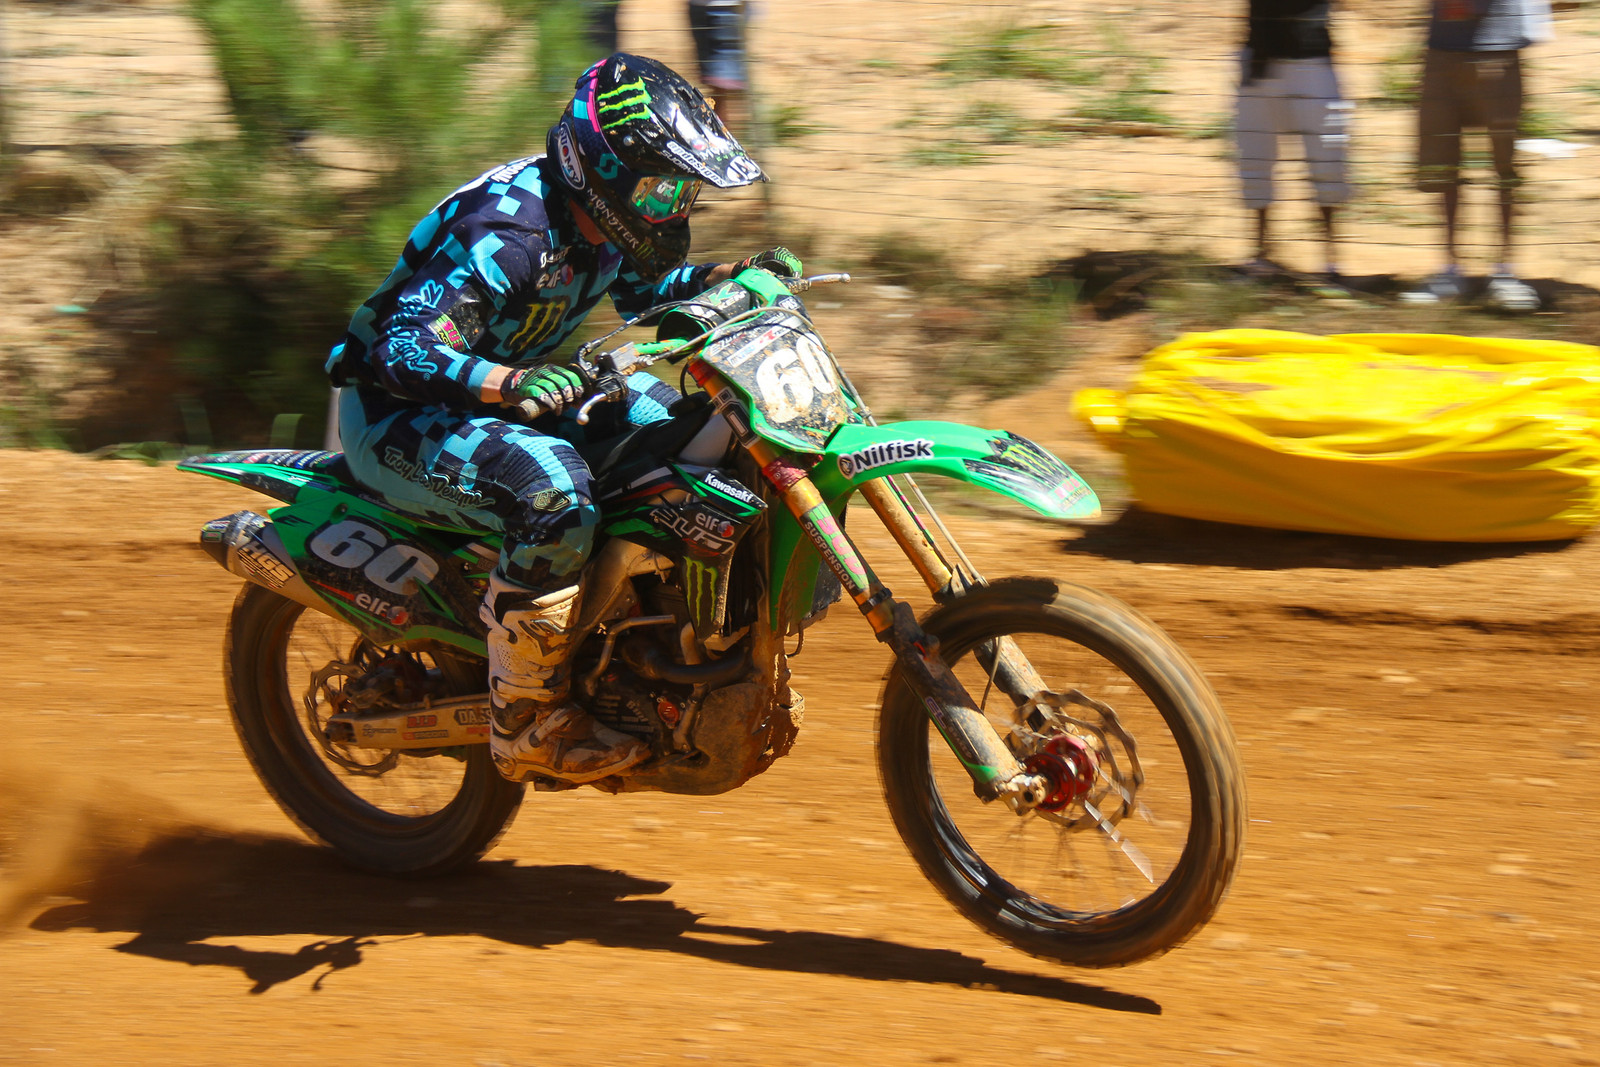 Tristan Charboneau - ayearinmx - Motocross Pictures - Vital MX